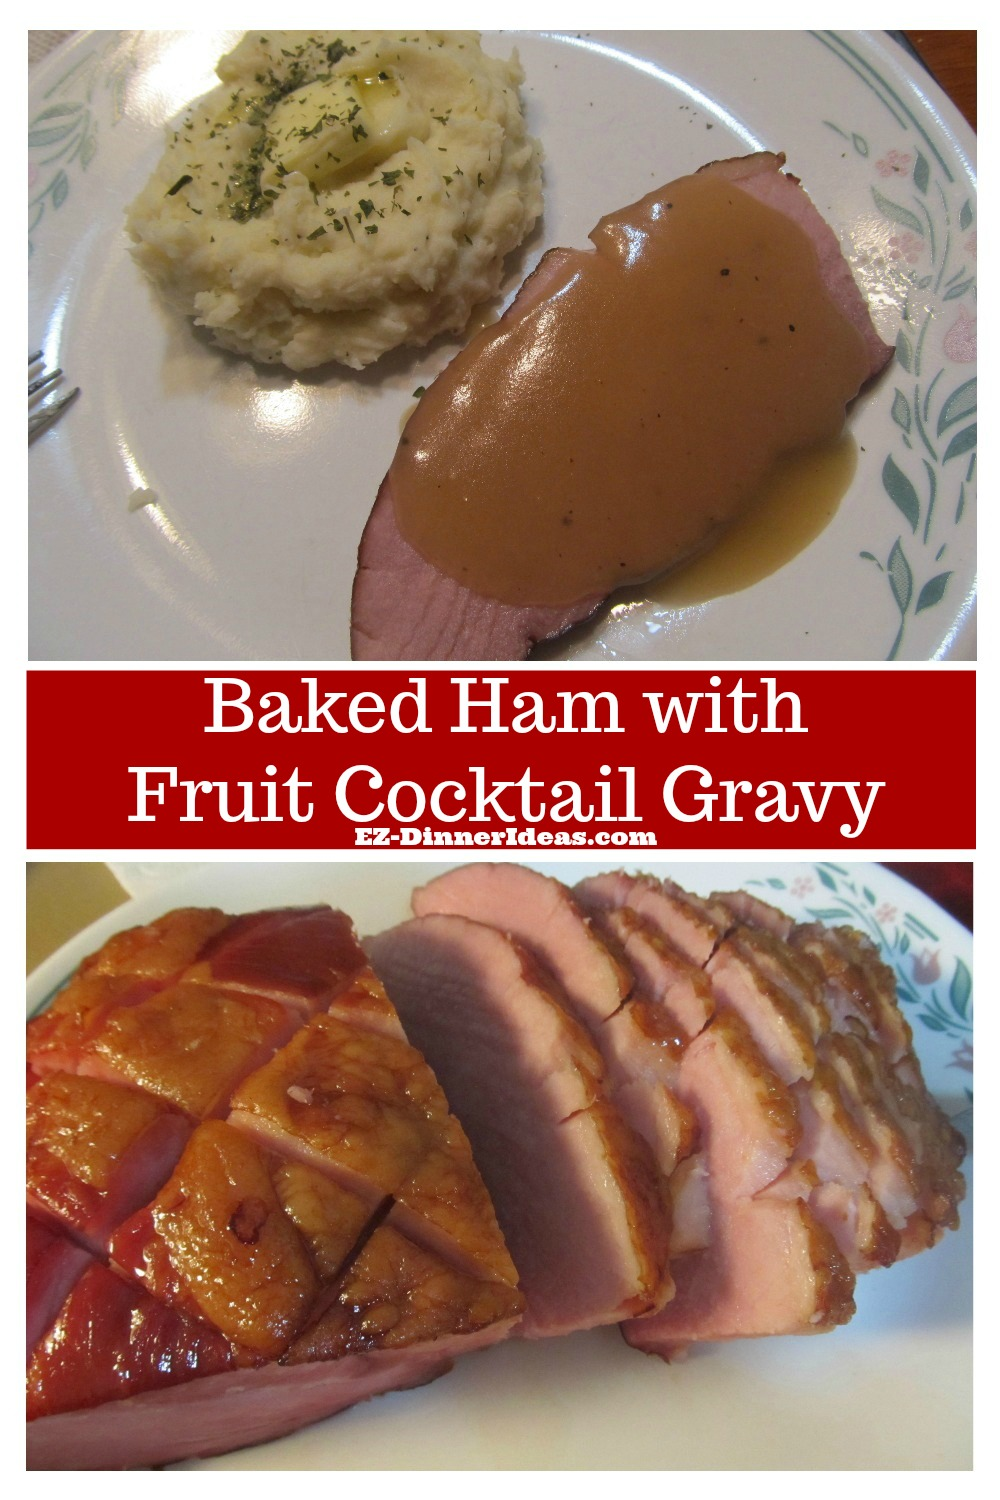 Baked Ham Dinner Menu with Fruit Cocktail Gravy - If there is a lot of leftover, don't worry.  There are tons of recipes here to show you how to turn leftover into many delicious meals.